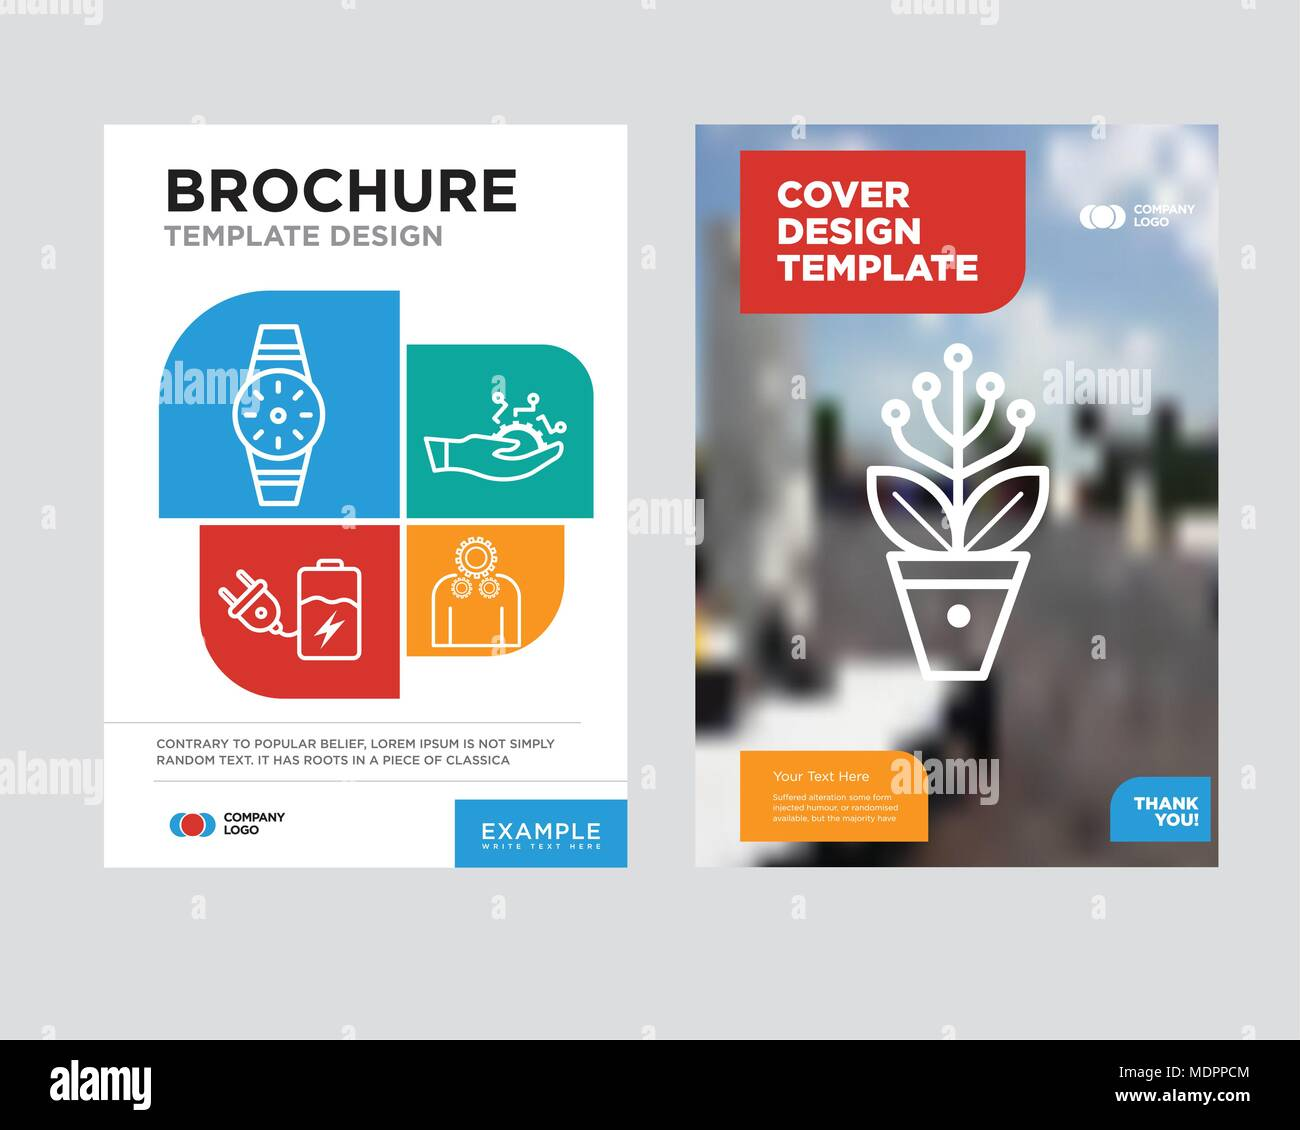 Settings Brochure Flyer Design Template With Abstract Photo Background Settings Development Battery Smartwatch Minimalist Trend Business Corporate Stock Vector Image Art Alamy